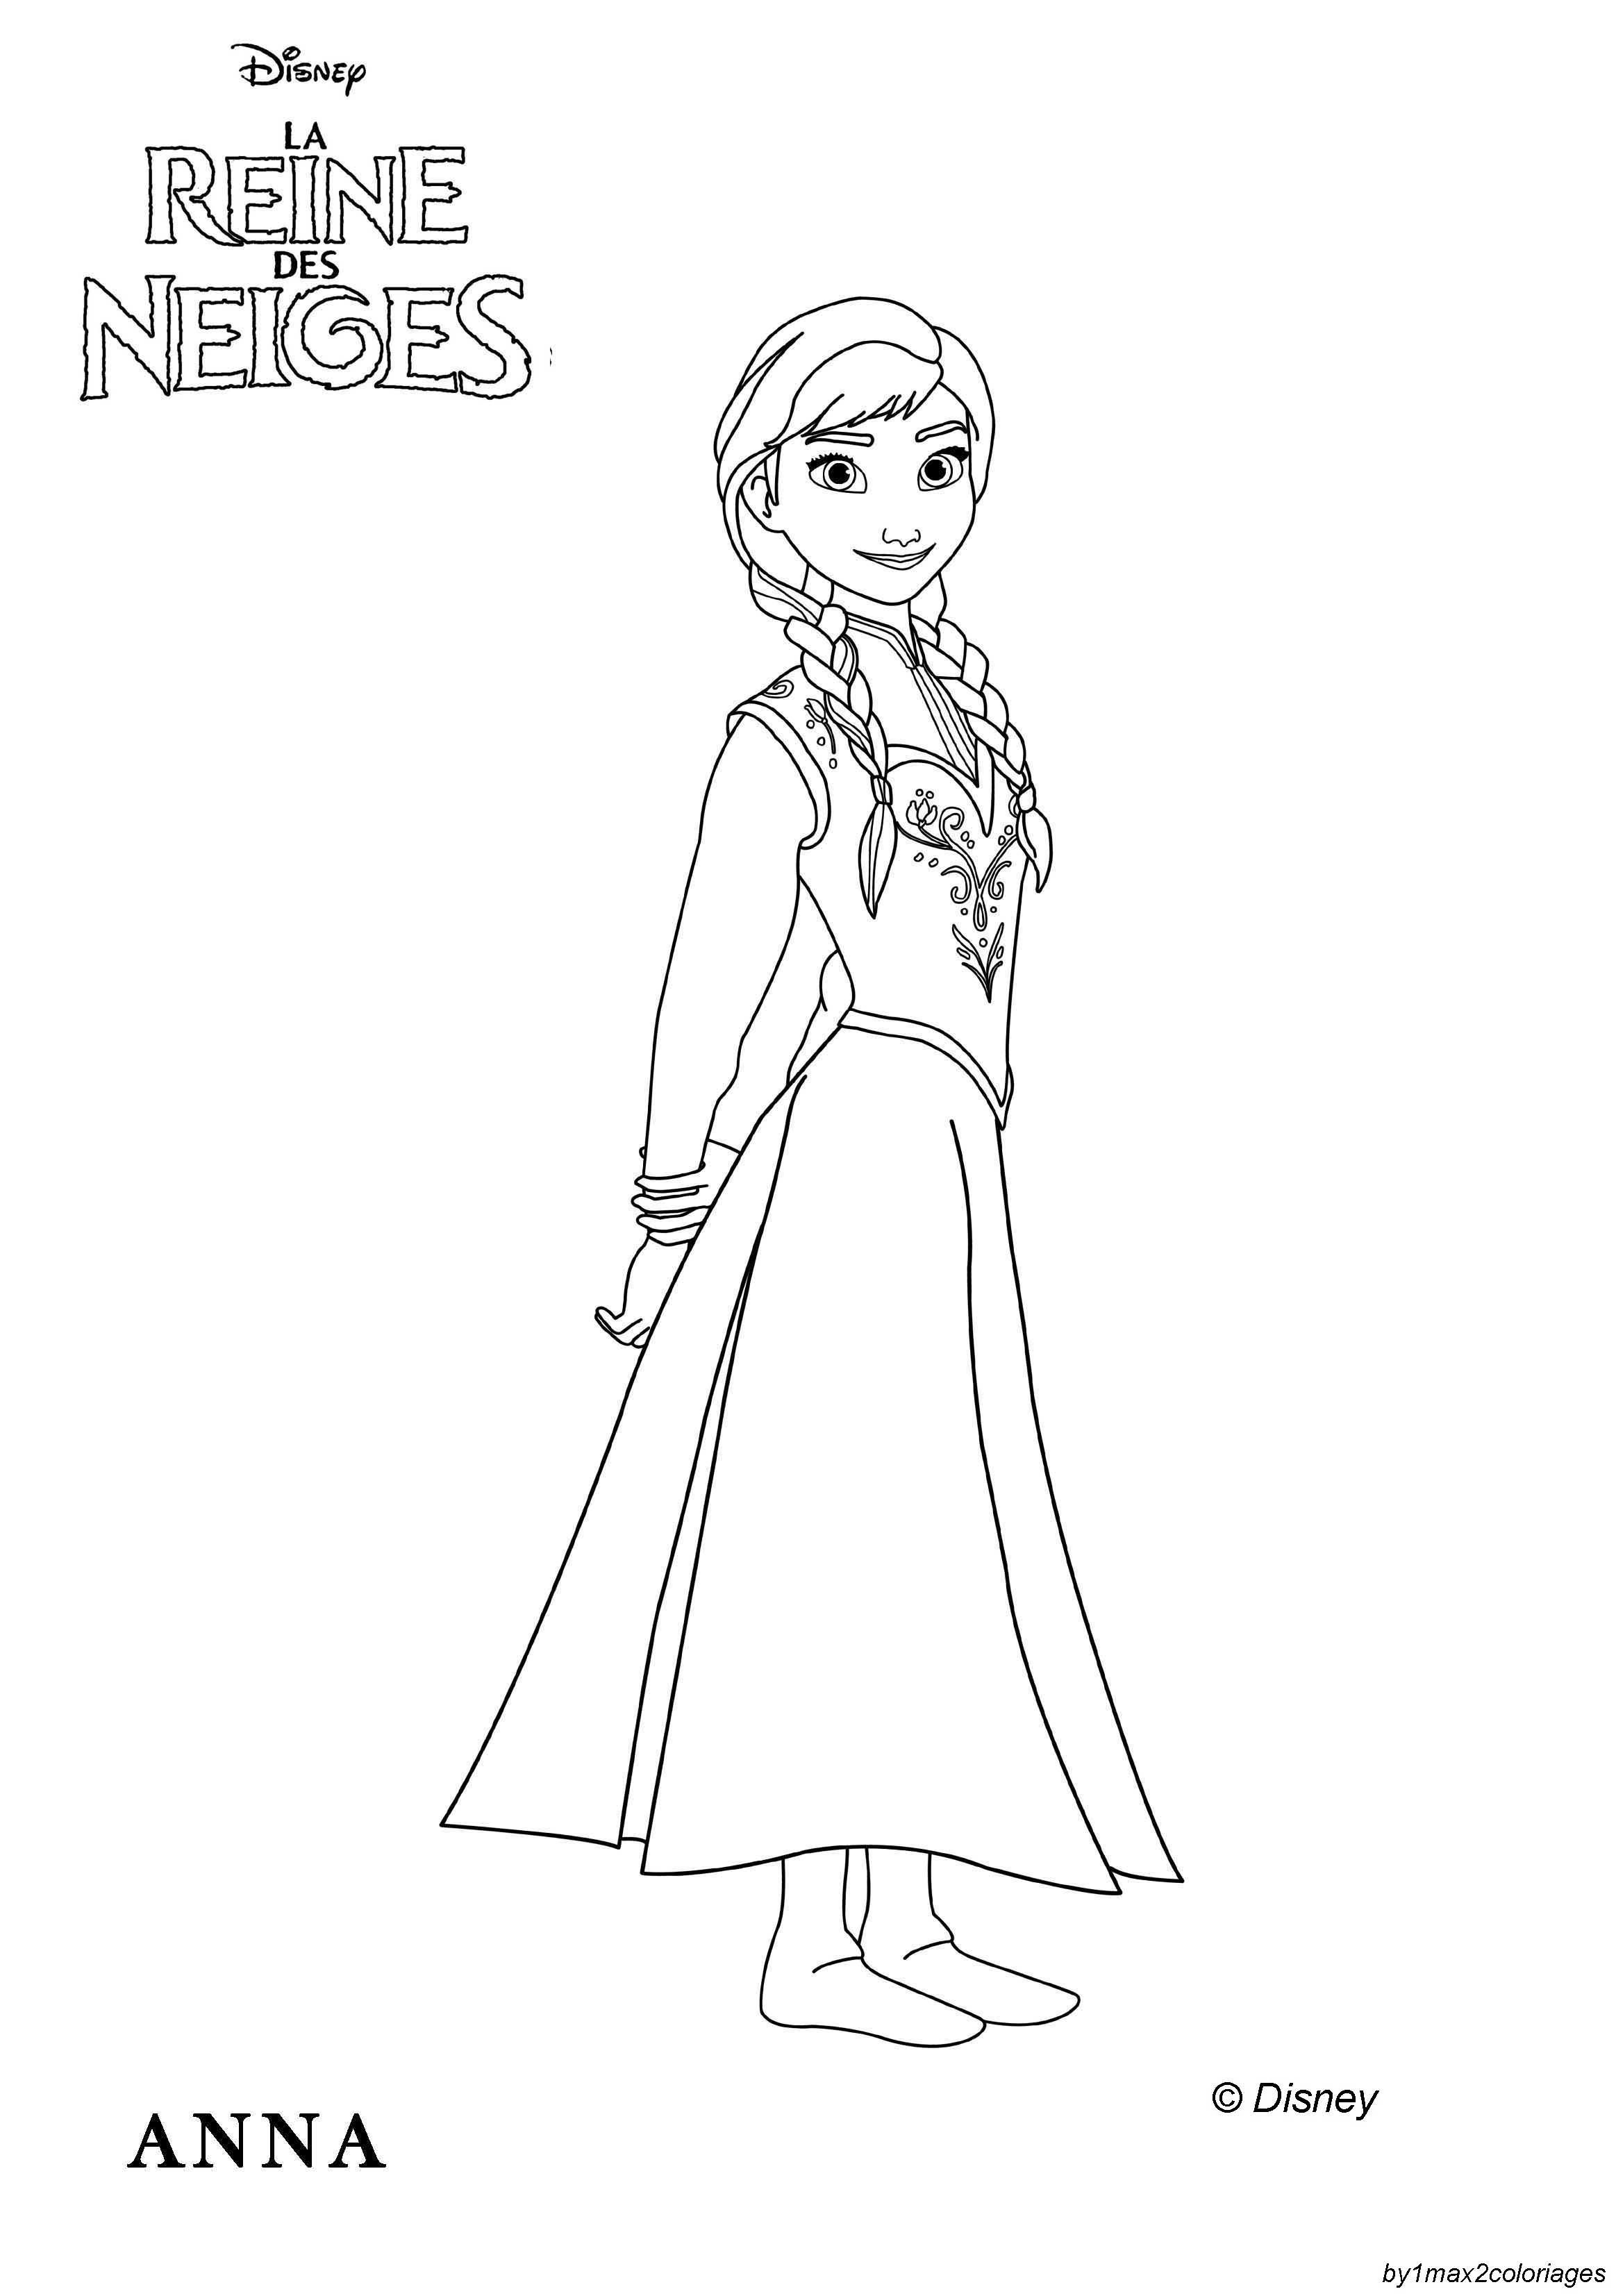 Coloriage Officiel De La Reine Des Neiges Elsa La Reine Des Neiges